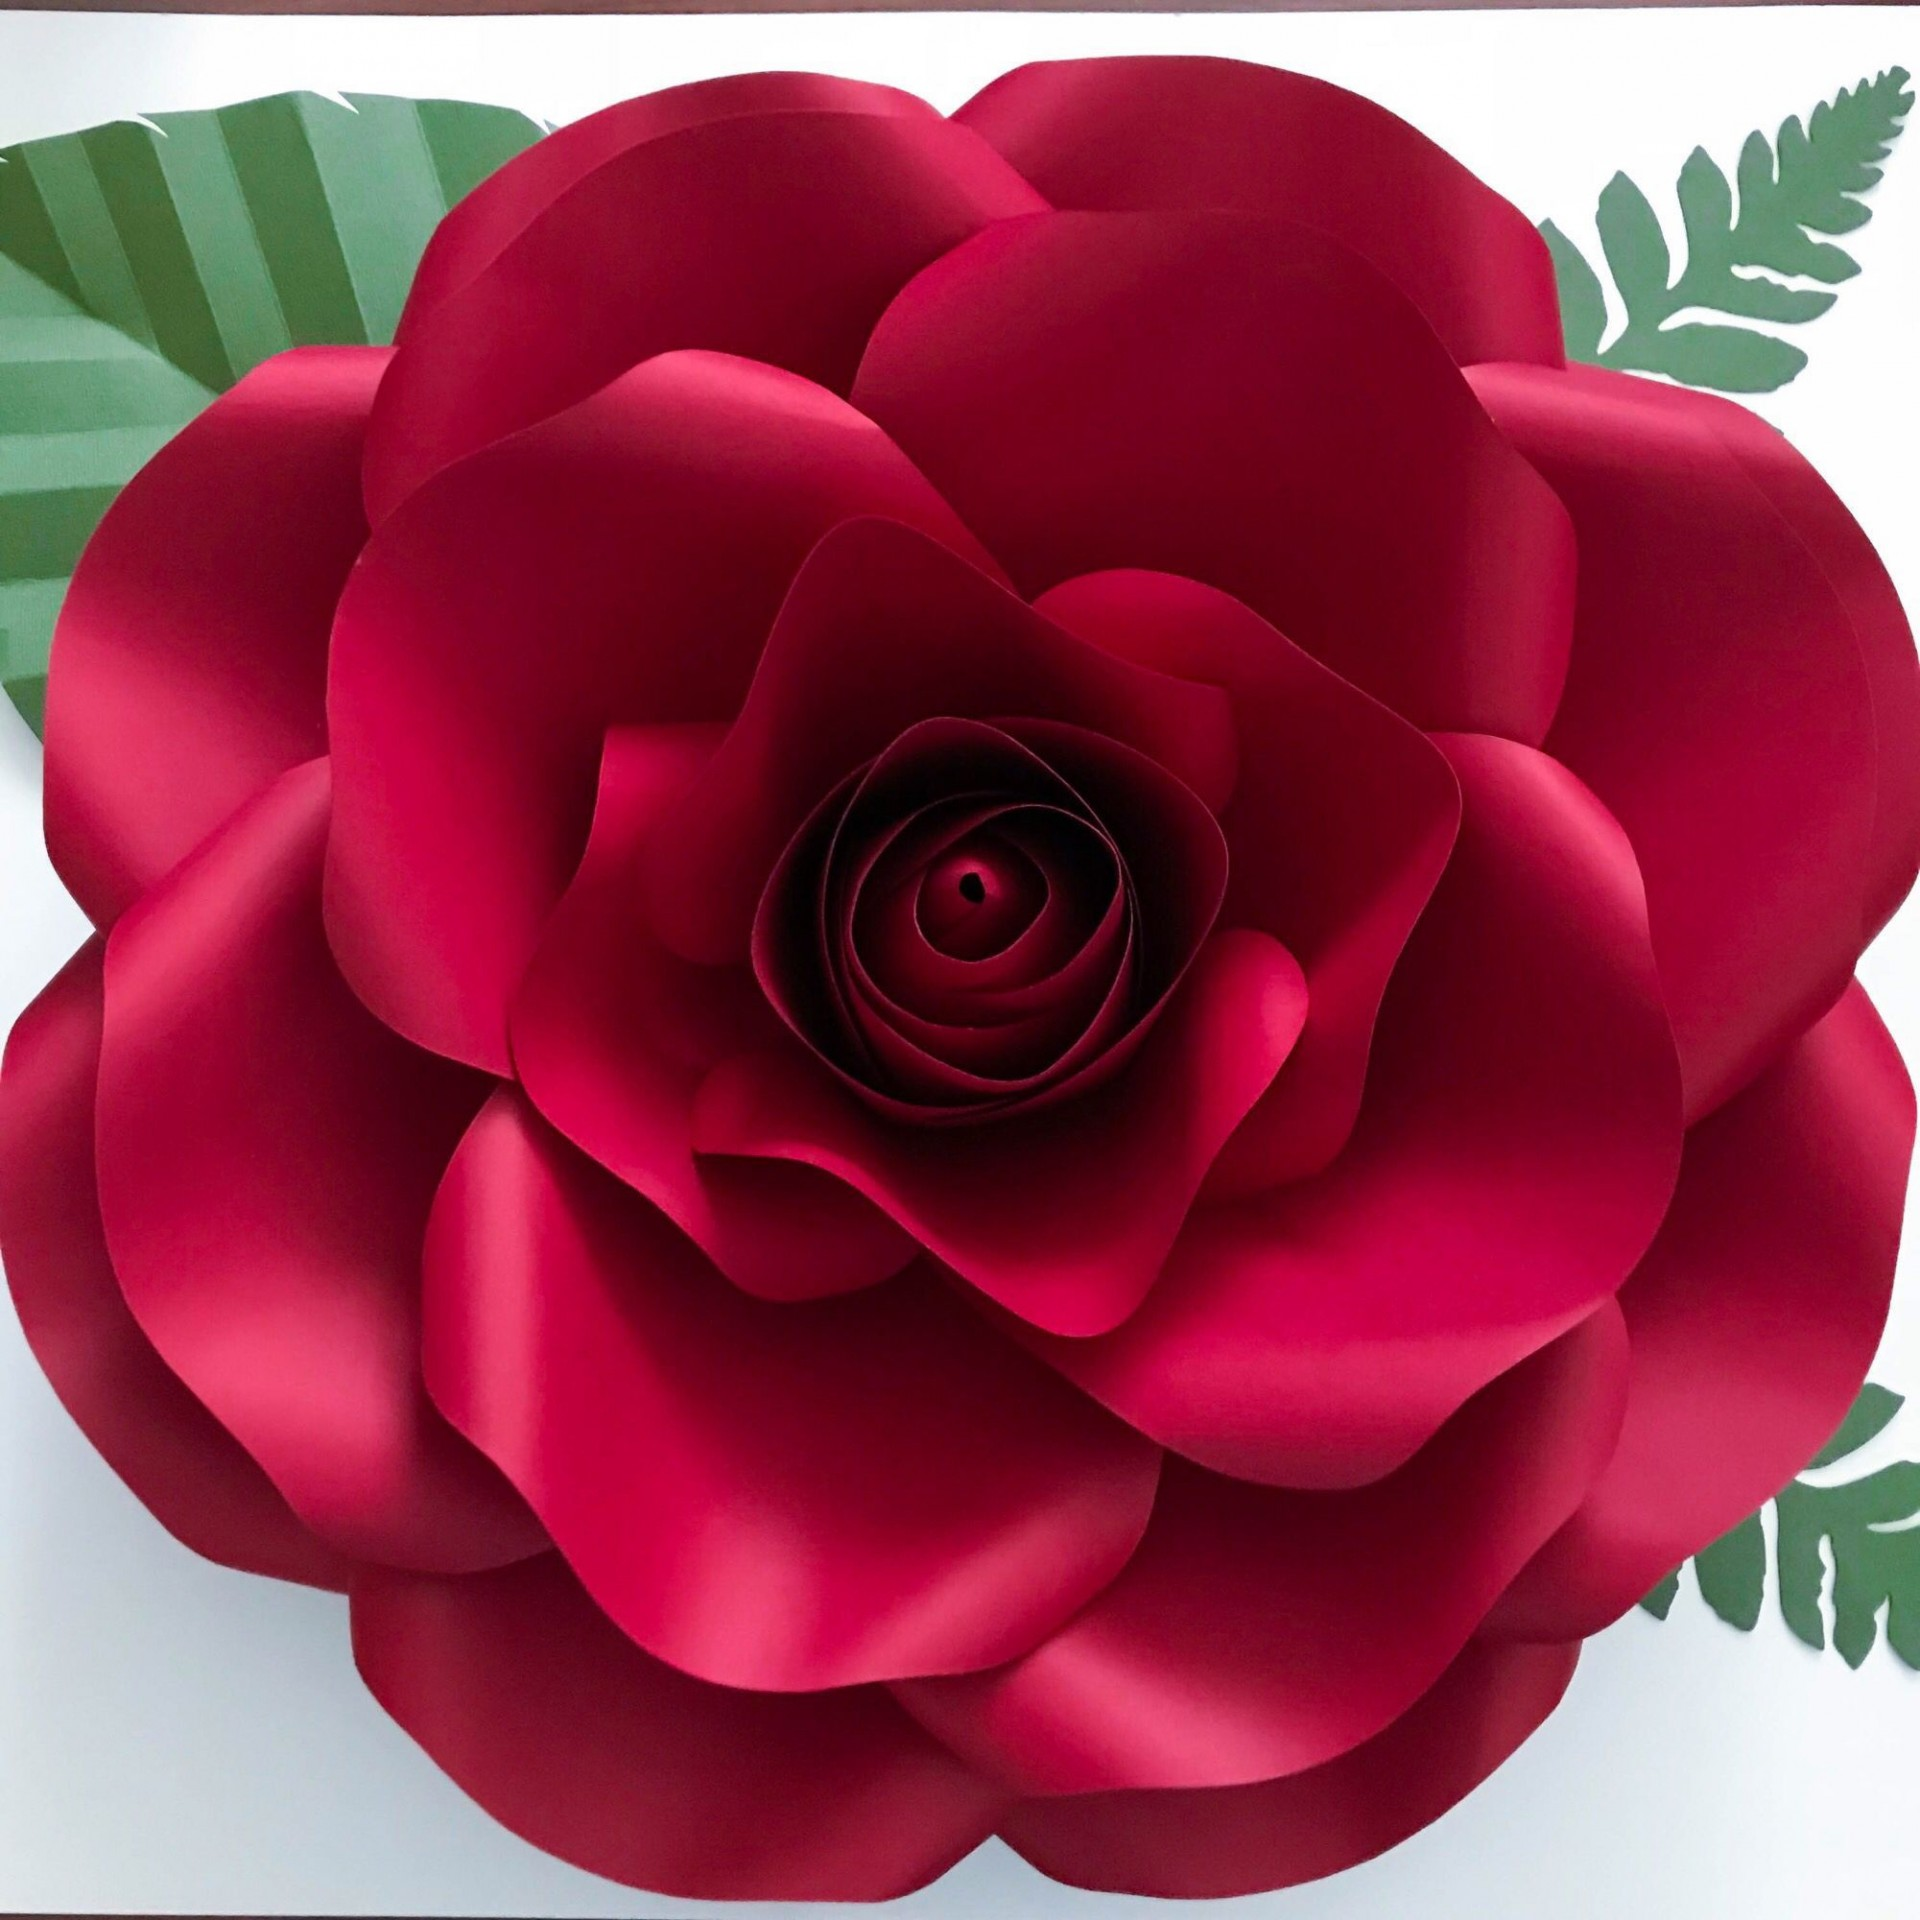 005 Staggering Giant Rose Paper Flower Template Free Sample 1920